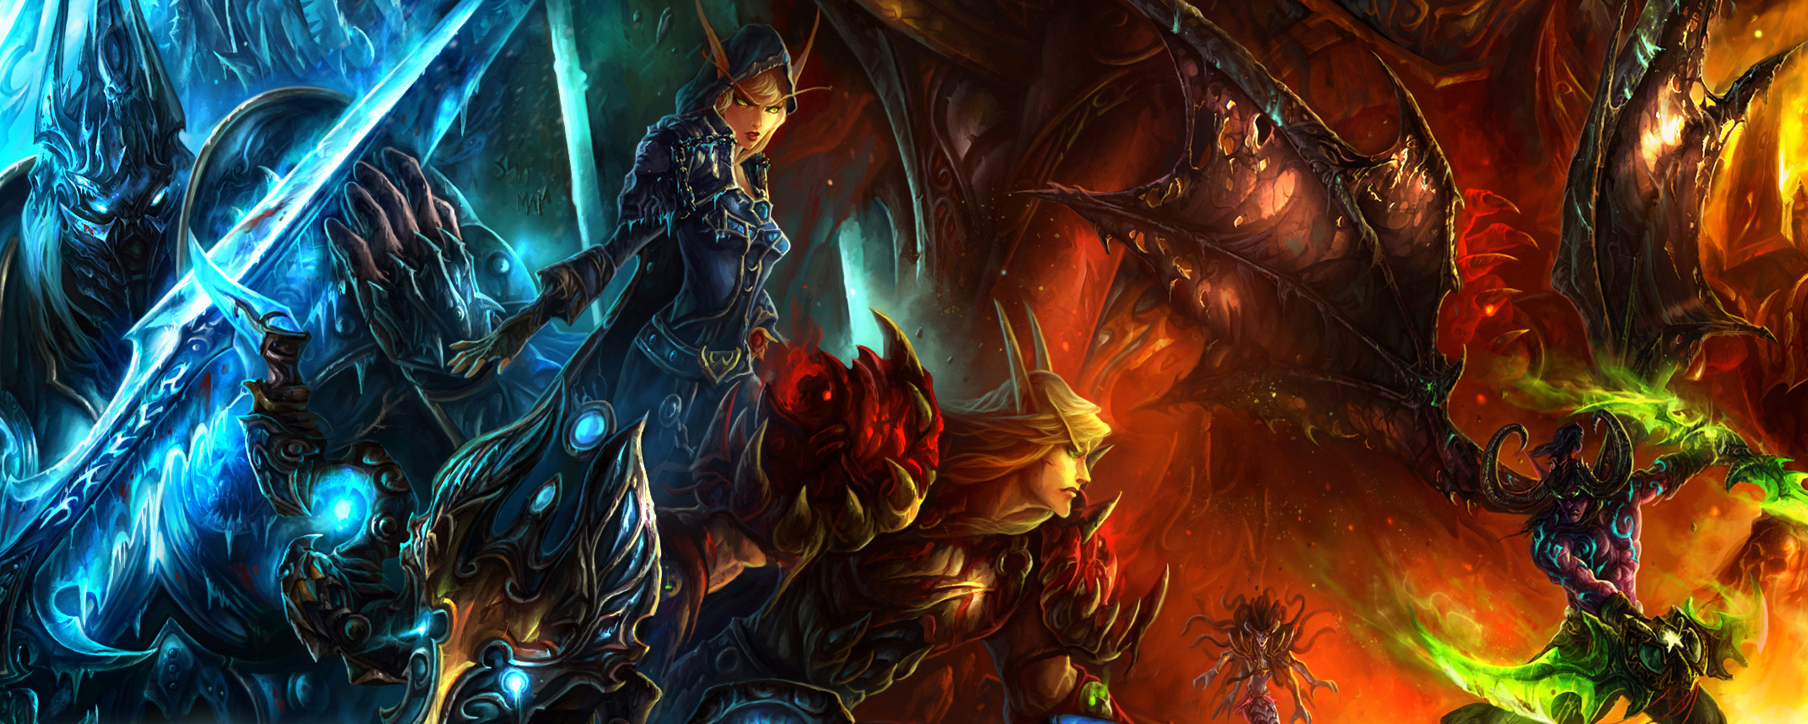 Blizzards Players Top 10 World Of Warcraft Quests Offer Adventure